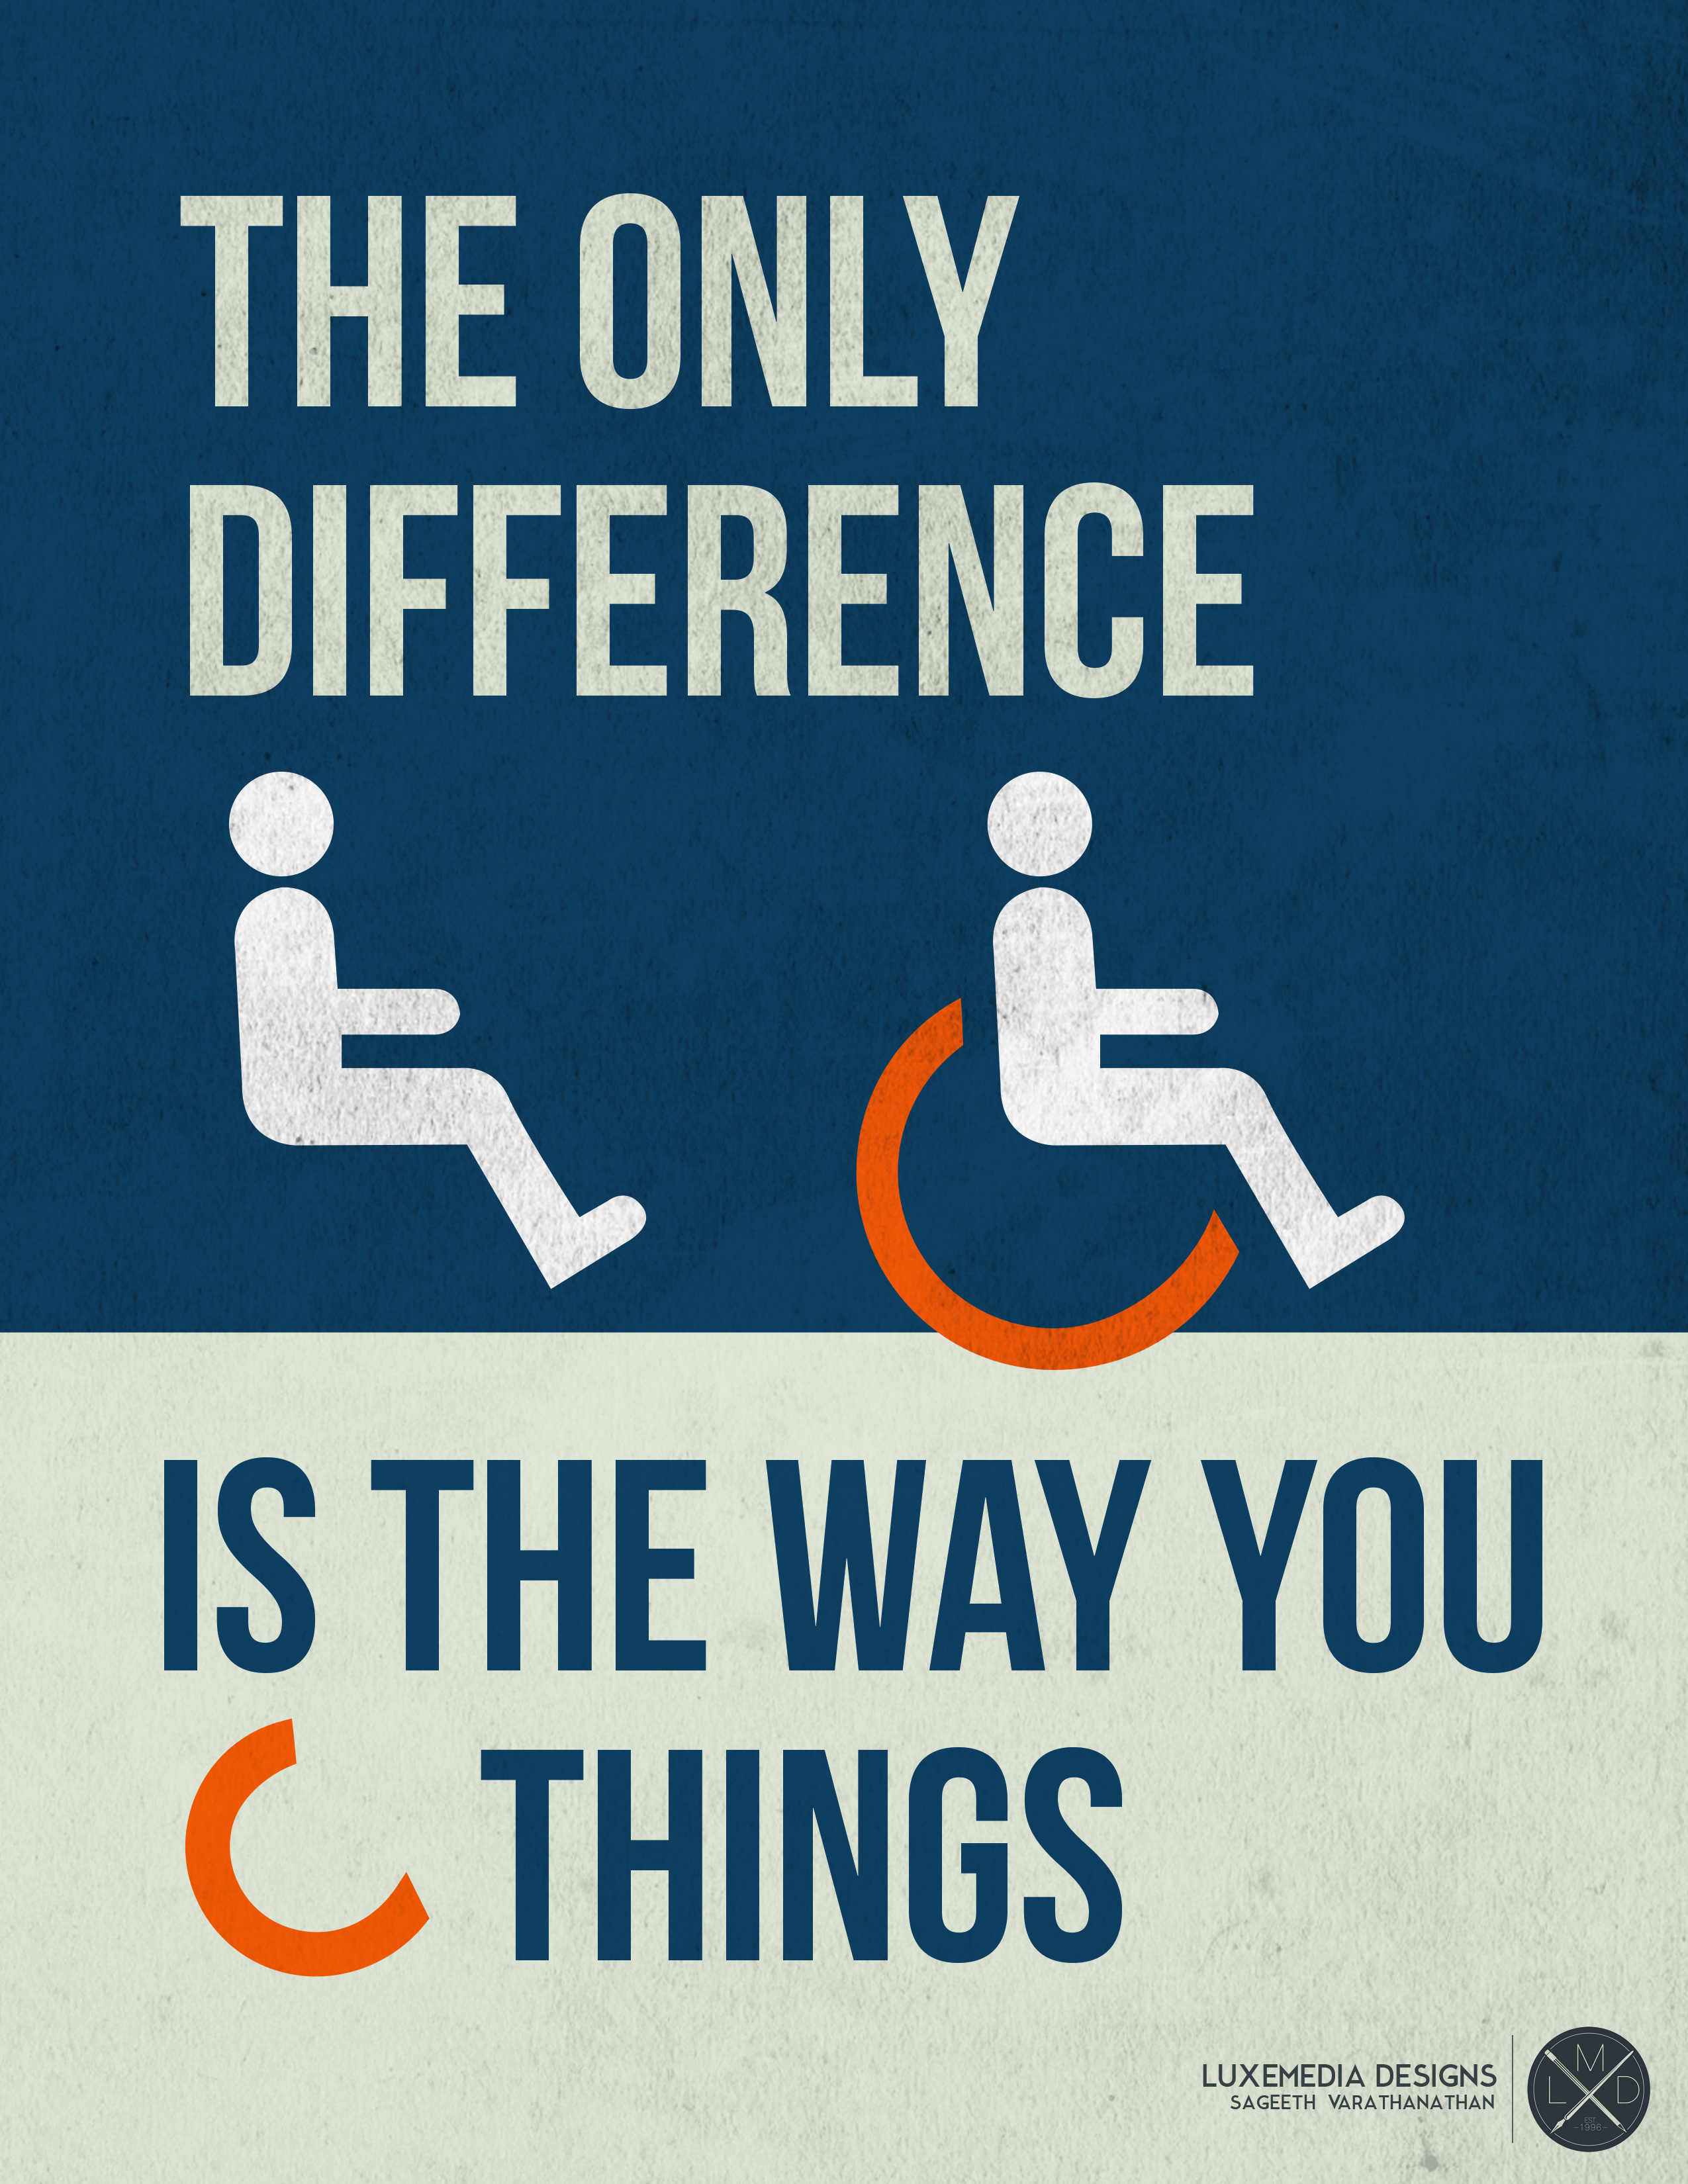 Wheelchair image saying, the only difference is the way you see things